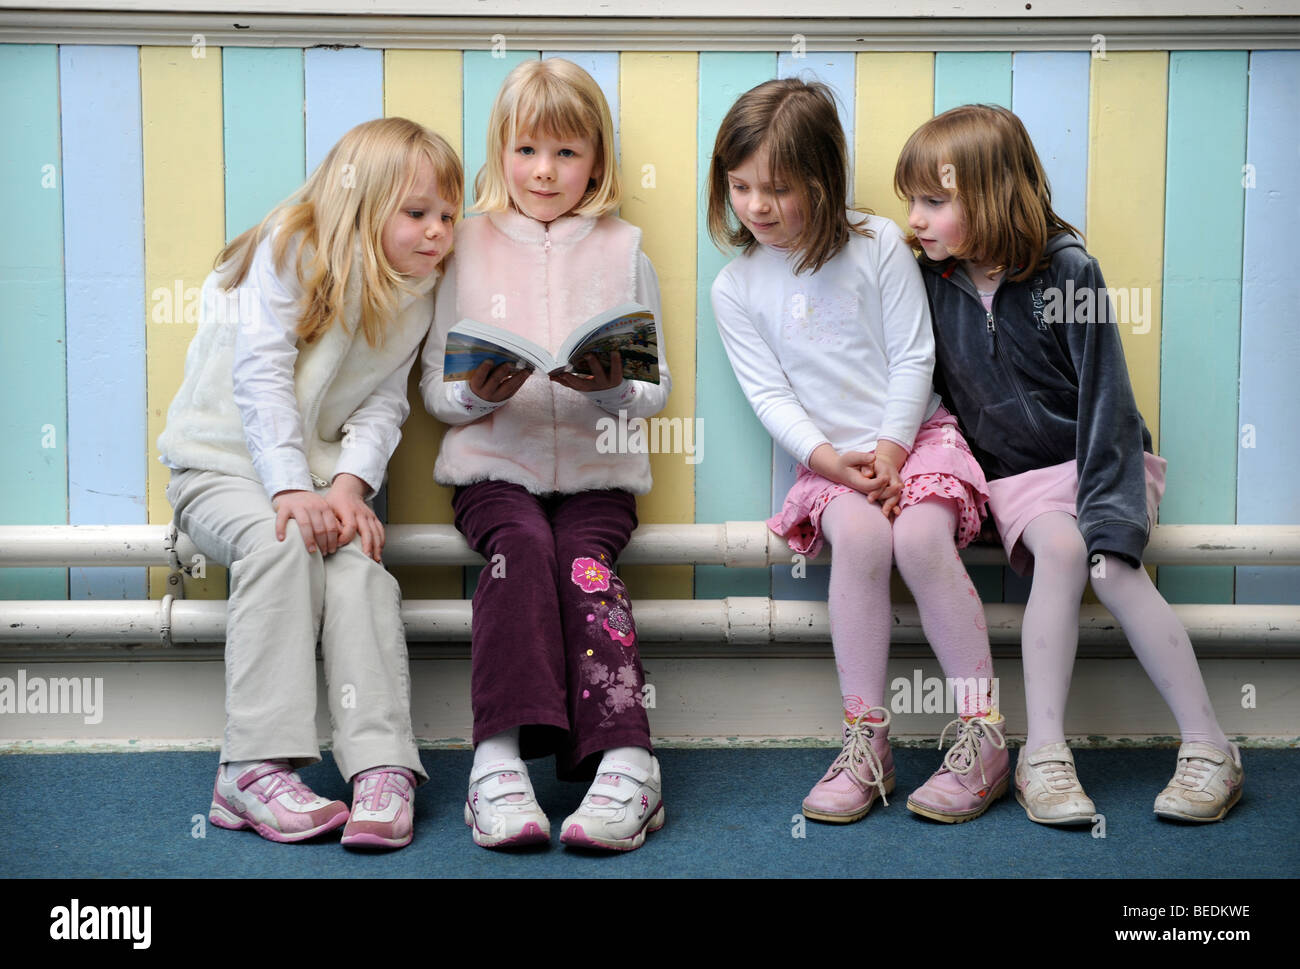 A GROUP OF FOUR GIRLS READING A BIBLE TOGETHER AT A SUNDAY SCHOOL UK - Stock Image